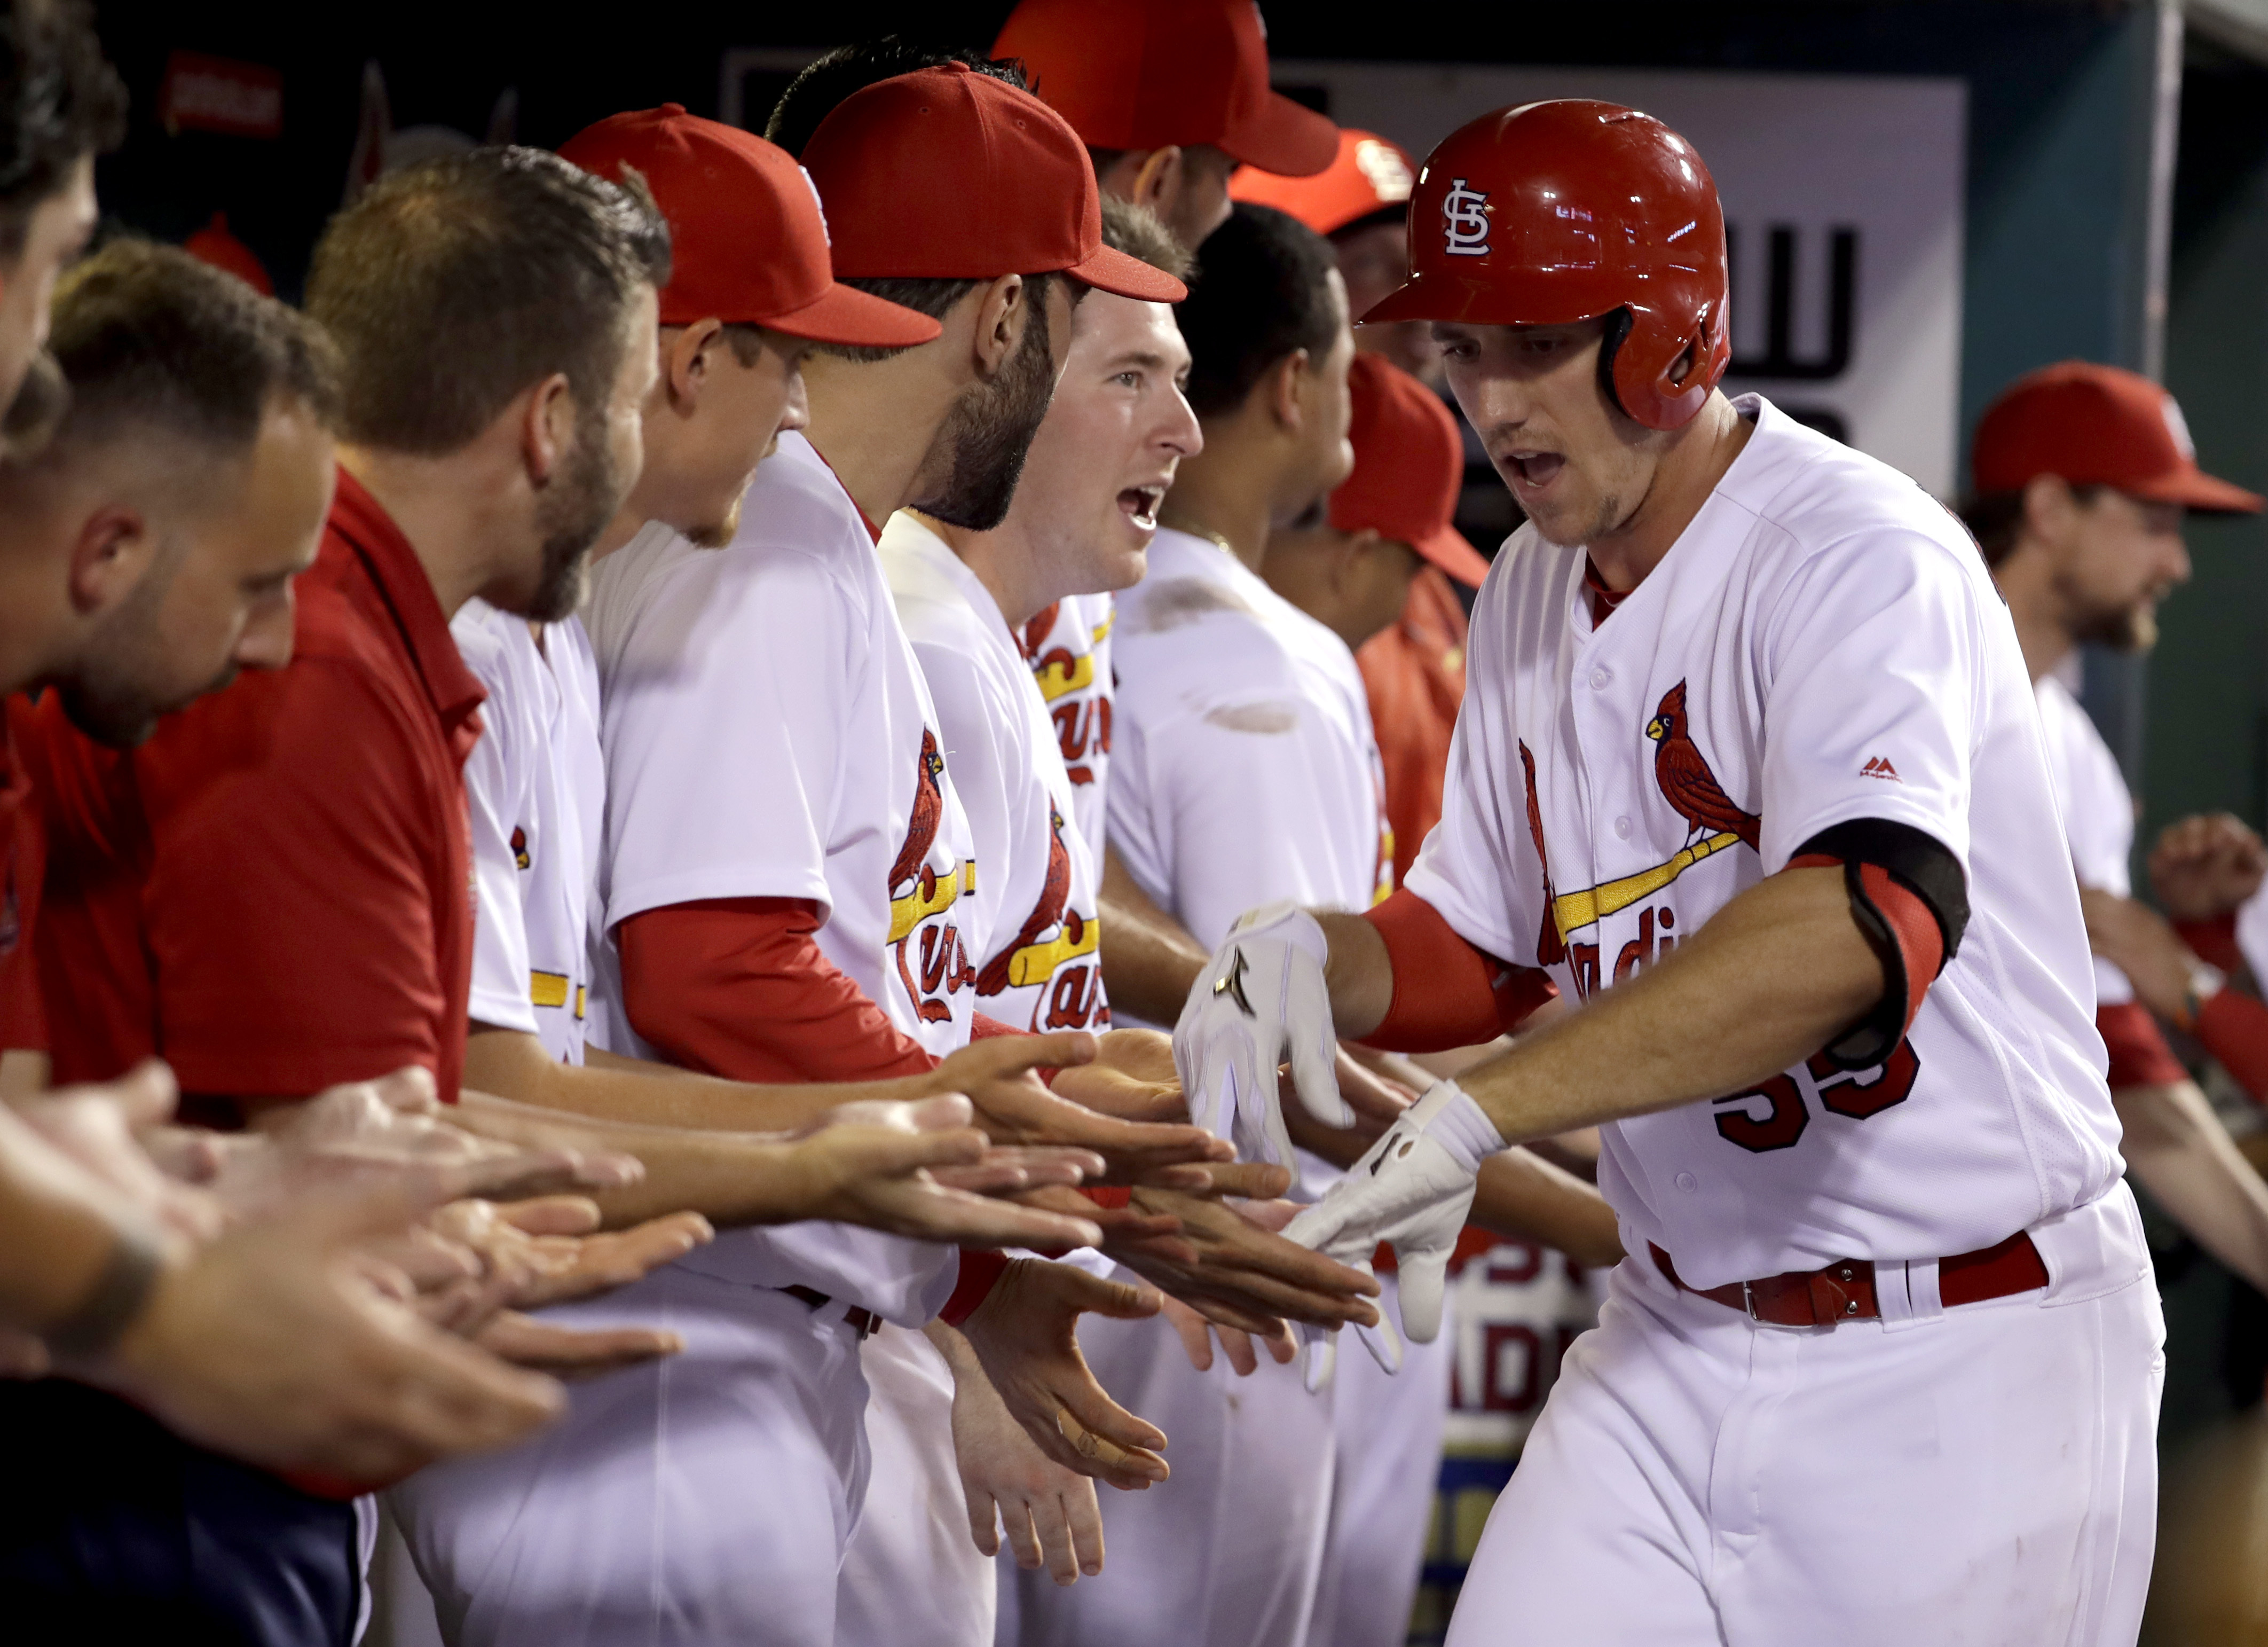 St. Louis Cardinals' Stephen Piscotty, right, is congratulated by teammates after hitting a two-run home run during the third inning of a baseball game against the Milwaukee Brewers on Friday, Sept. 9, 2016, in St. Louis. (AP Photo/Jeff Roberson)